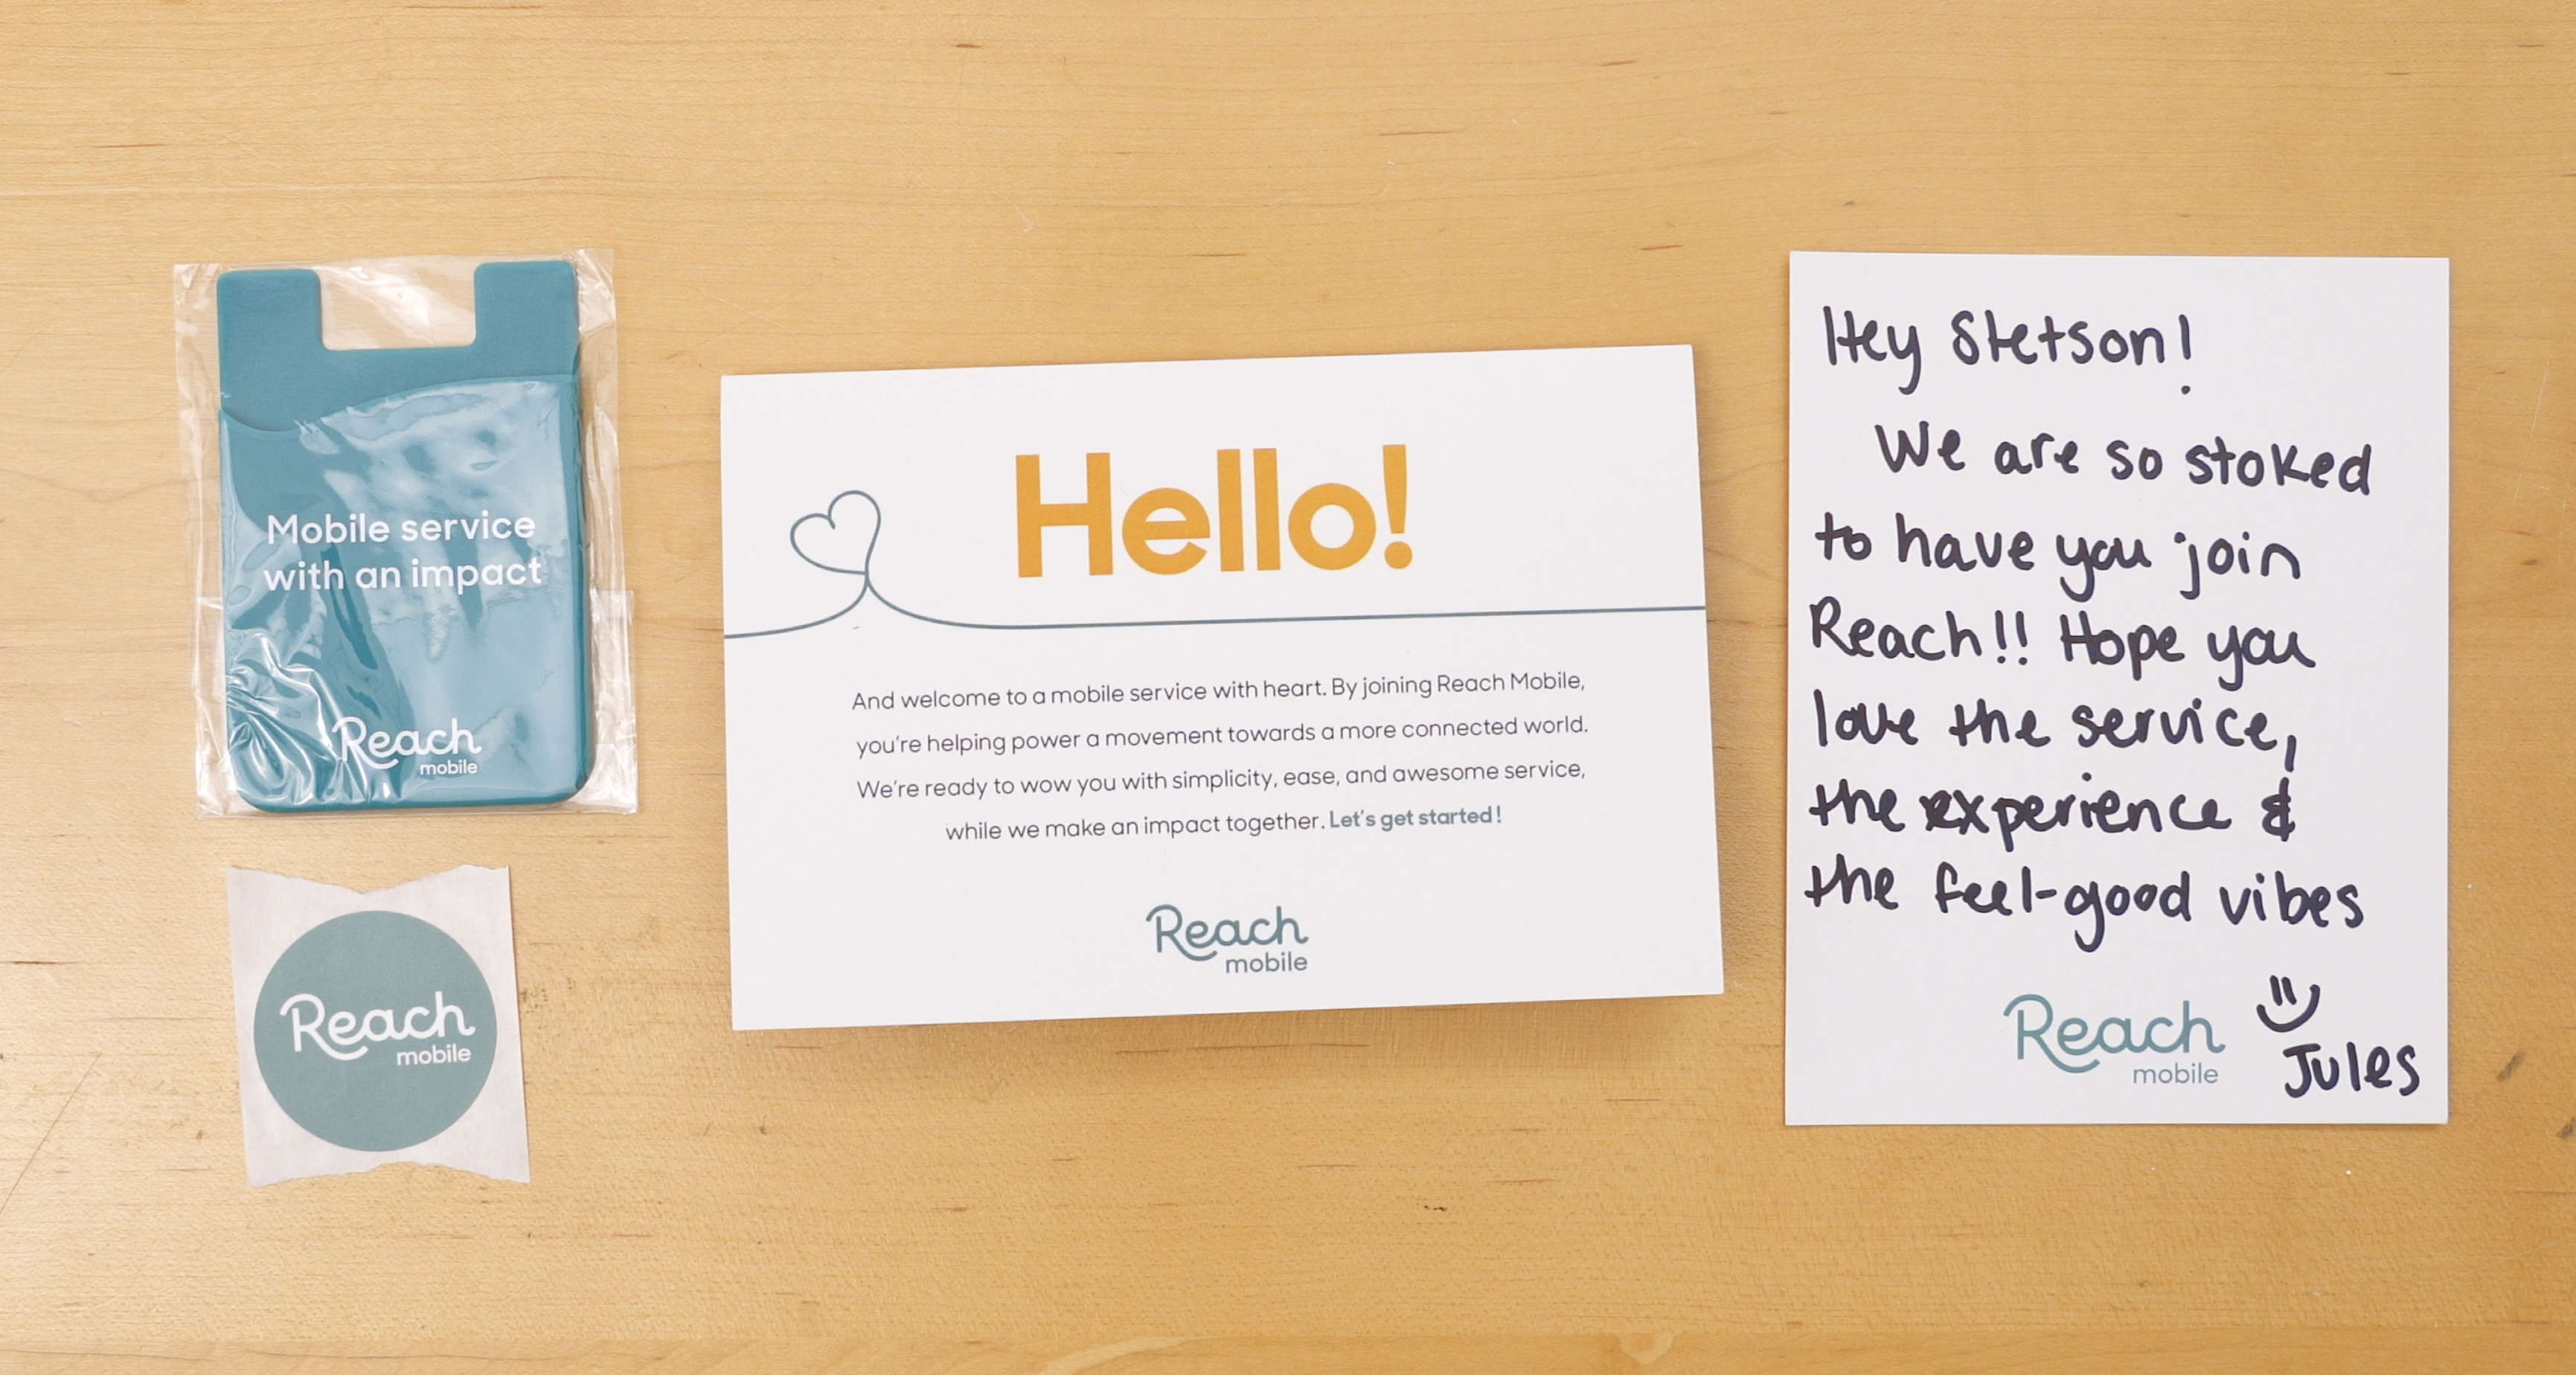 Reach Mobile activation kit and handwritten note welcoming me to the Reach Mobile network